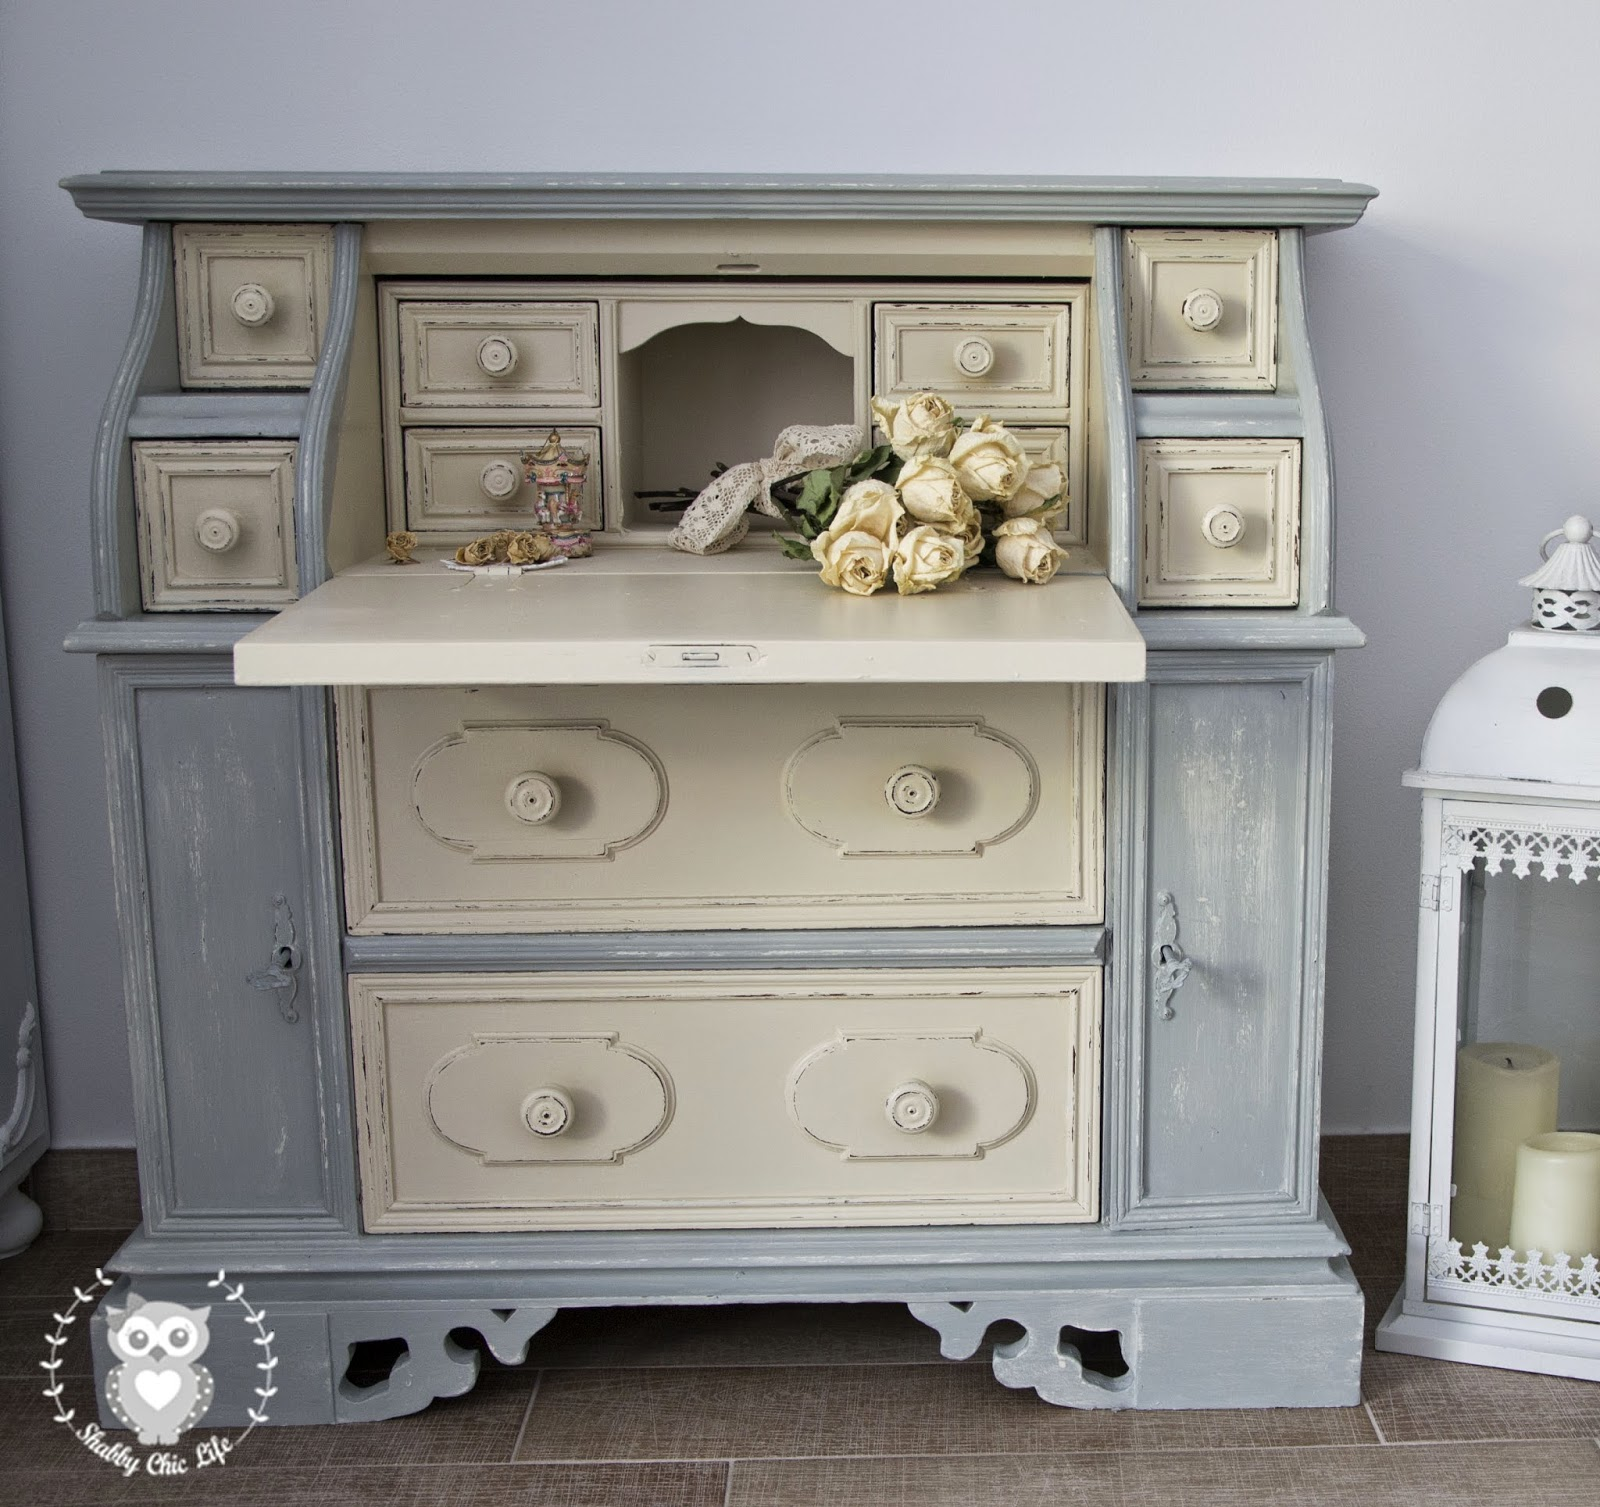 Chalk Paint, Shabby Chic e Decora Facile